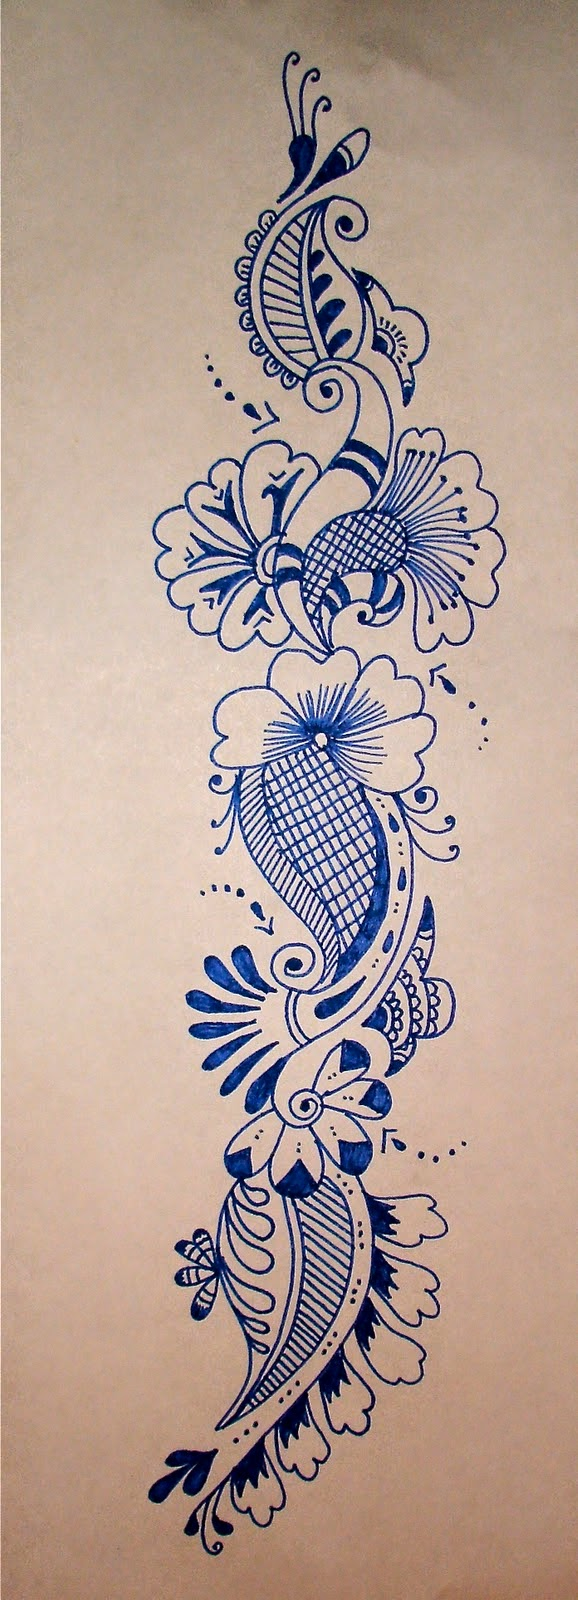 66 Images For Paper Drawing Henna Design All What Veiled